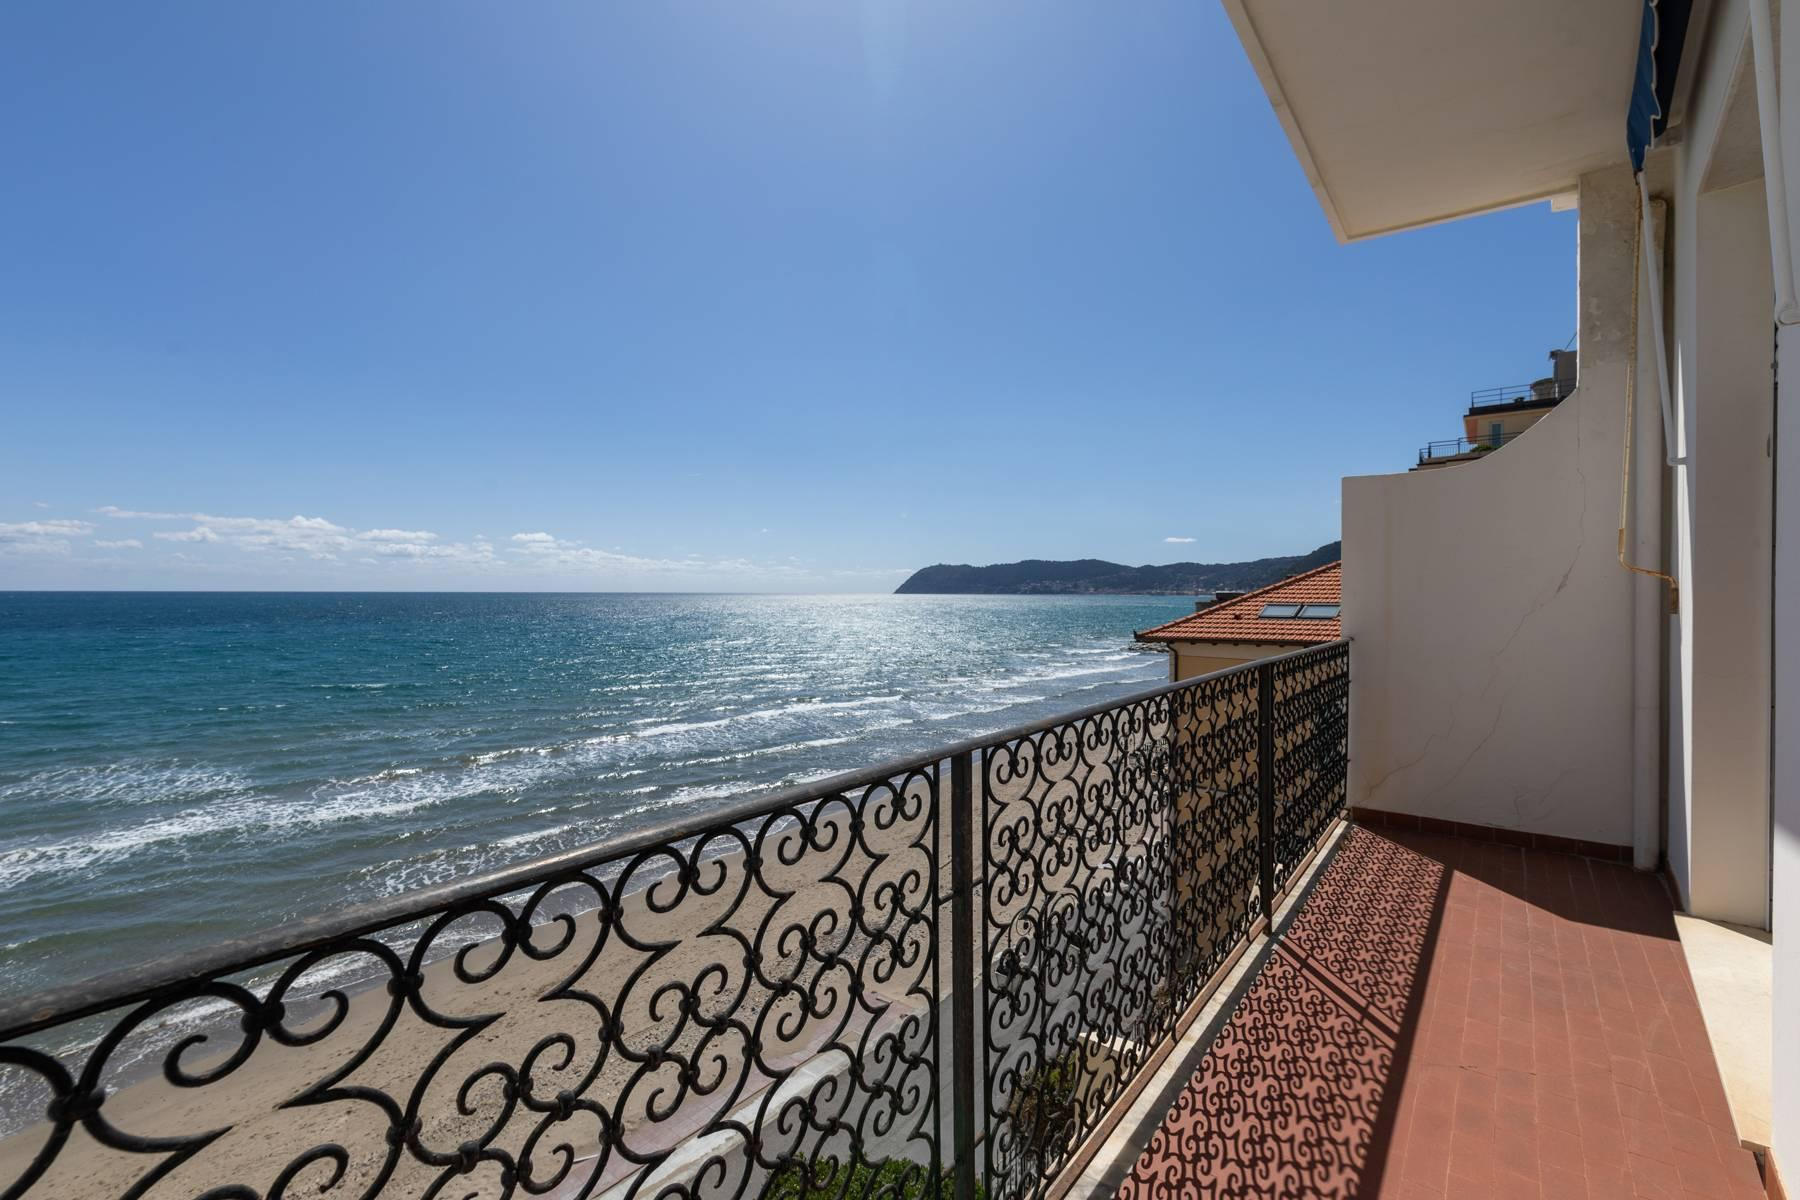 Panorama-Wohnung am Meer in Alassio - 10